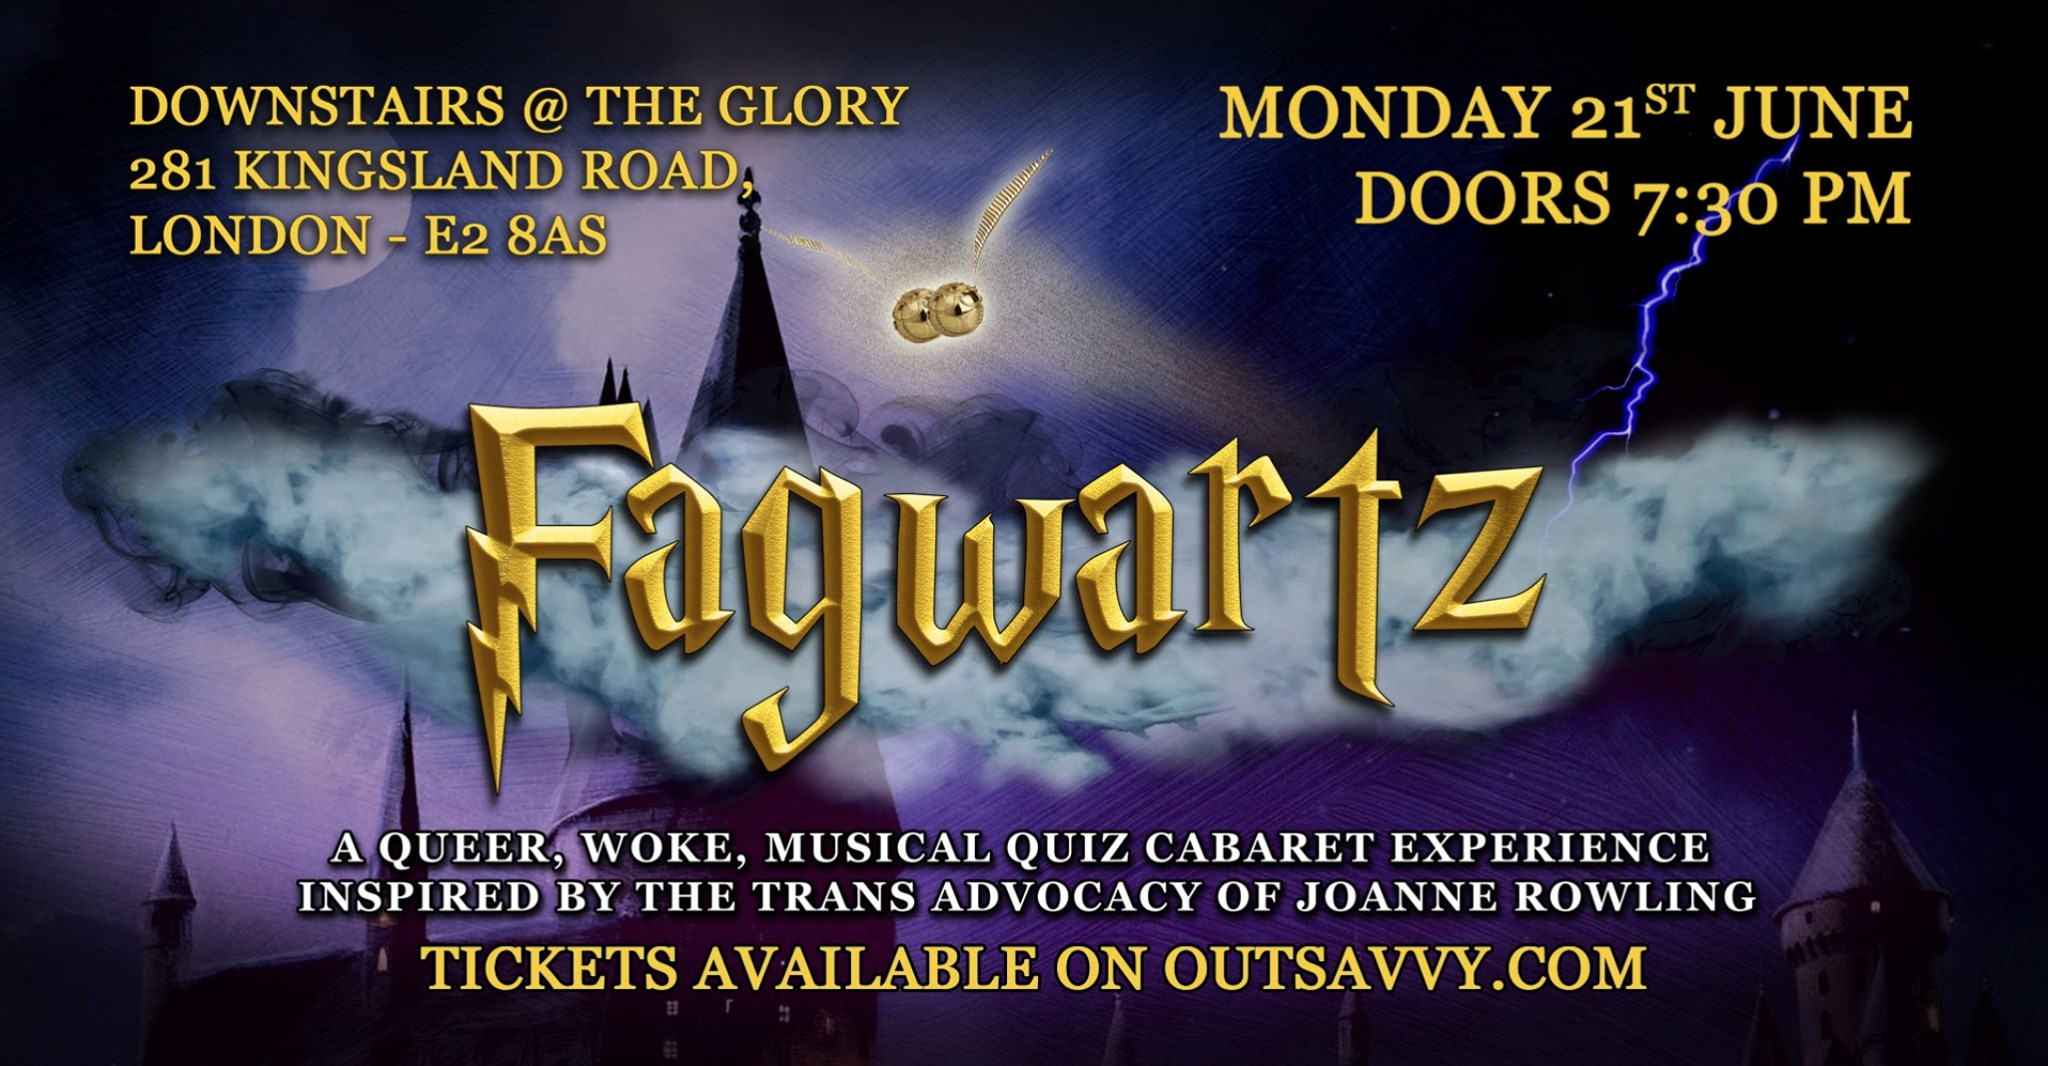 F*GWARTZ: A queer, musical quiz cabaret experience inspired by the trans advocacy of Joanne Rowling